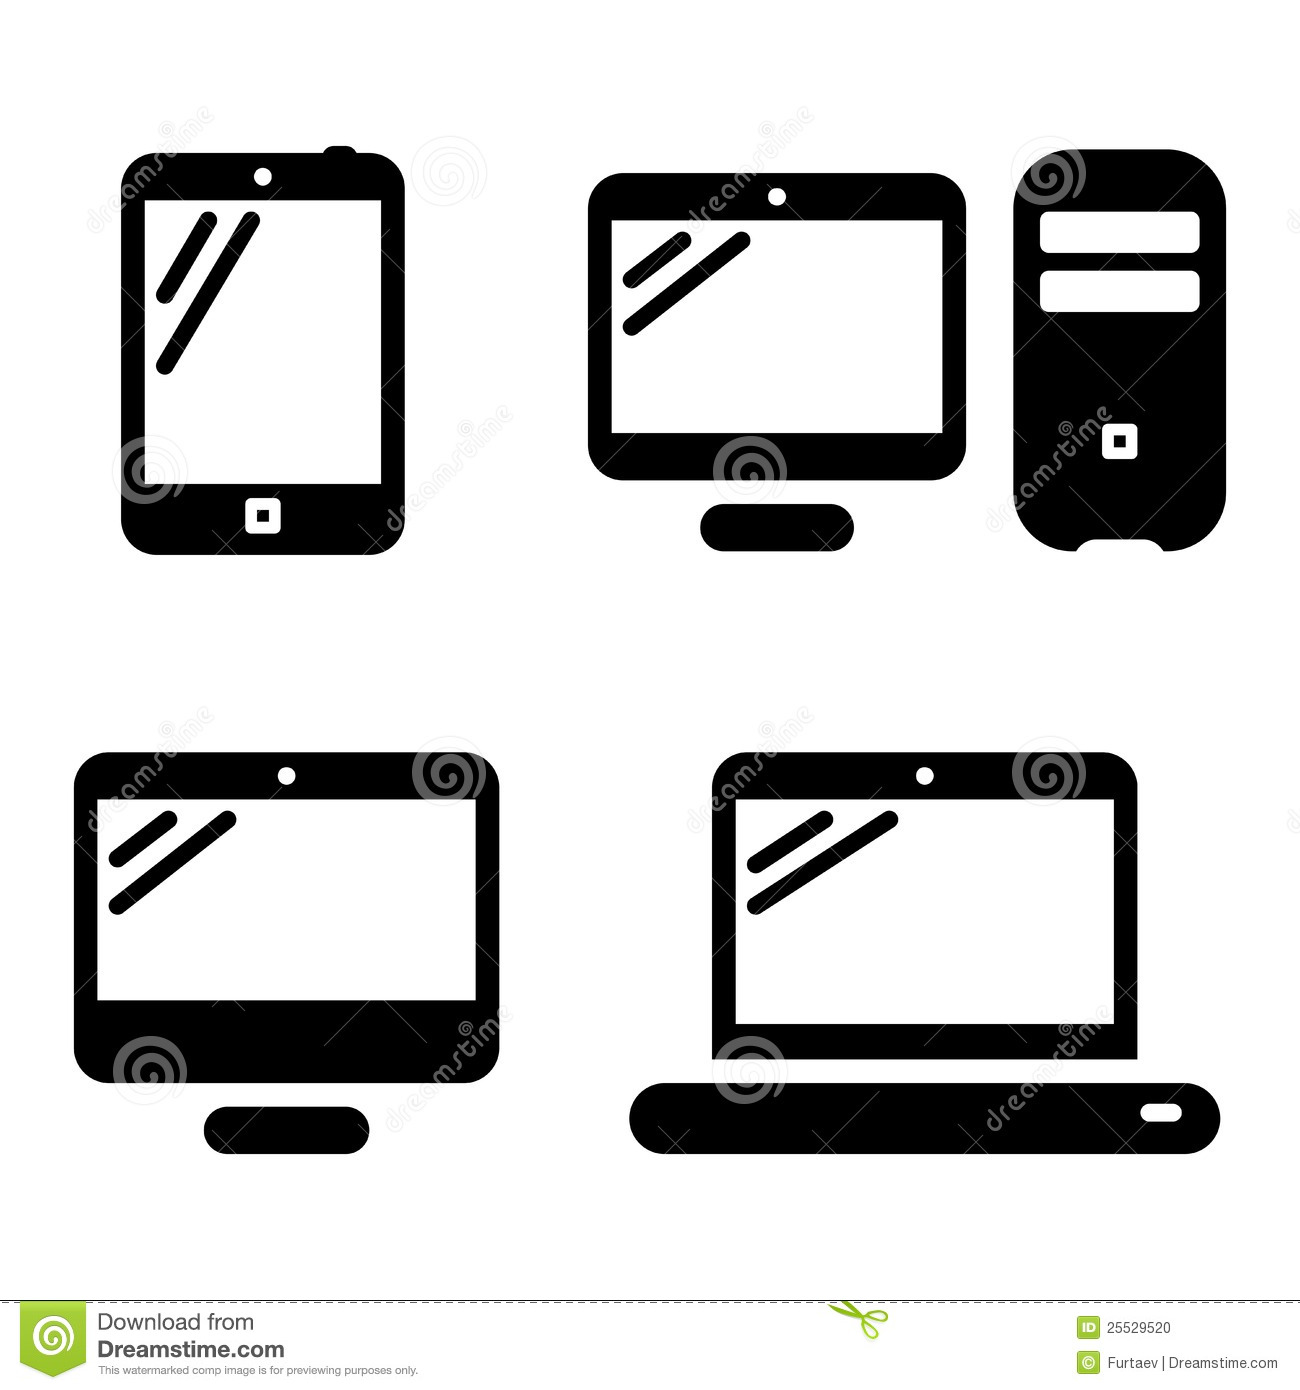 14 Laptop Icon Black And White Images